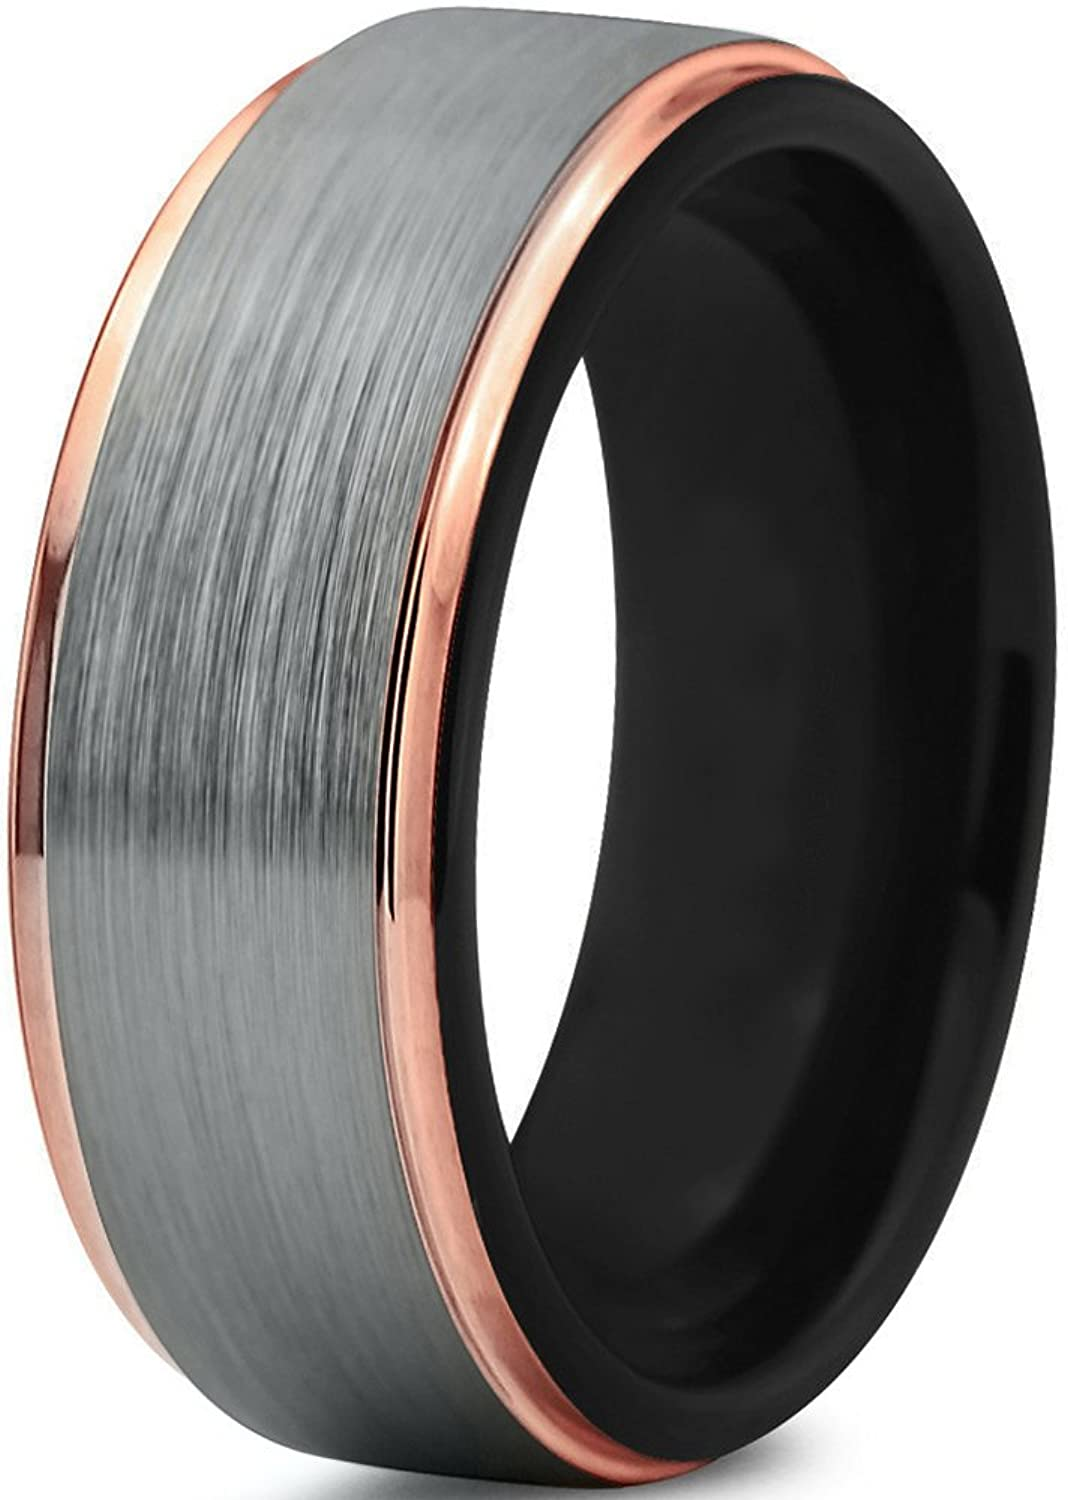 Tungsten Wedding Band Ring 8mm for Men Women Black & 18K Rose Gold Plated Stepped Edge Polished